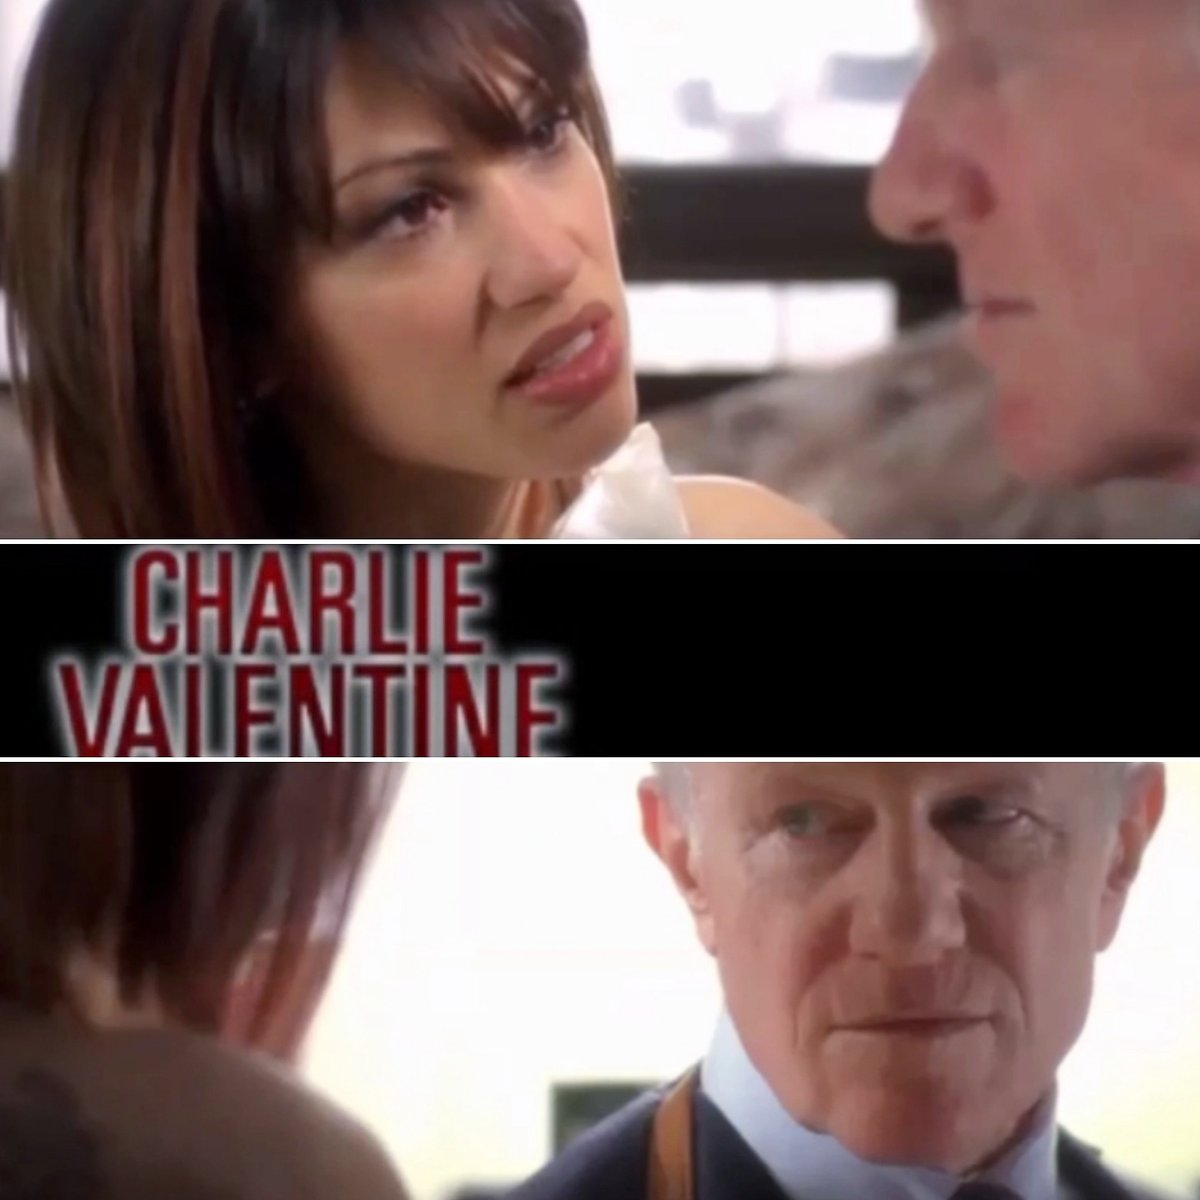 "My forever #Valentine, ""CharlieValentine"". Played by the brilliantly multitalented #RaymondBarry.   Directed by Jesse Johnson.    #filmmaking #actress #casting #filmmaker #movies #SupportIndieFilm #RaymondJBarry #Valentines2020<br>http://pic.twitter.com/Jve0bZqHcA"